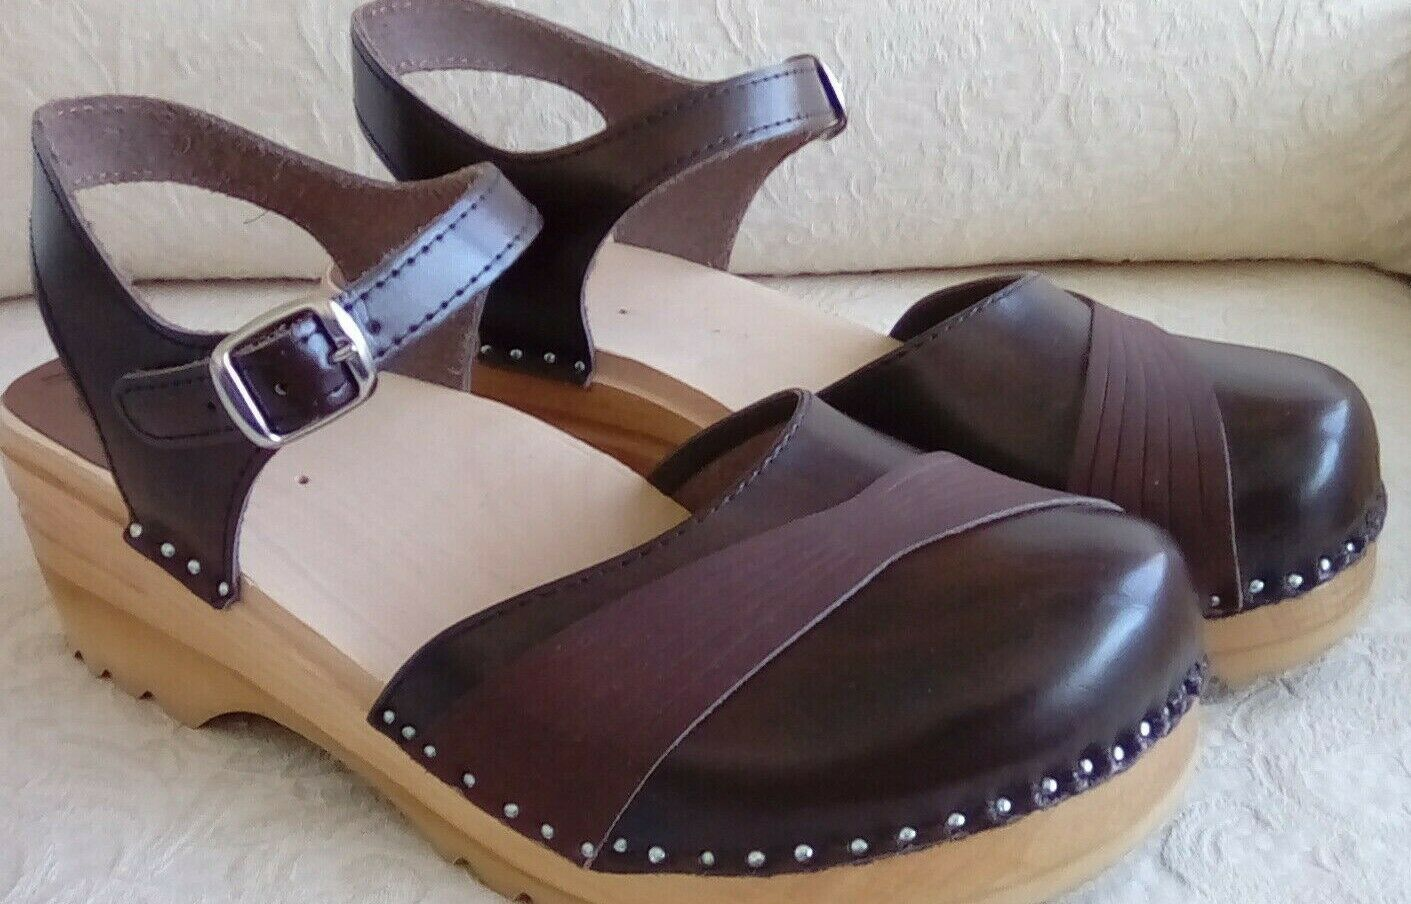 Troentorp Penny Clogs braun Leather Mary Jane Style schuhe Sz 41 E 11 US Sweden